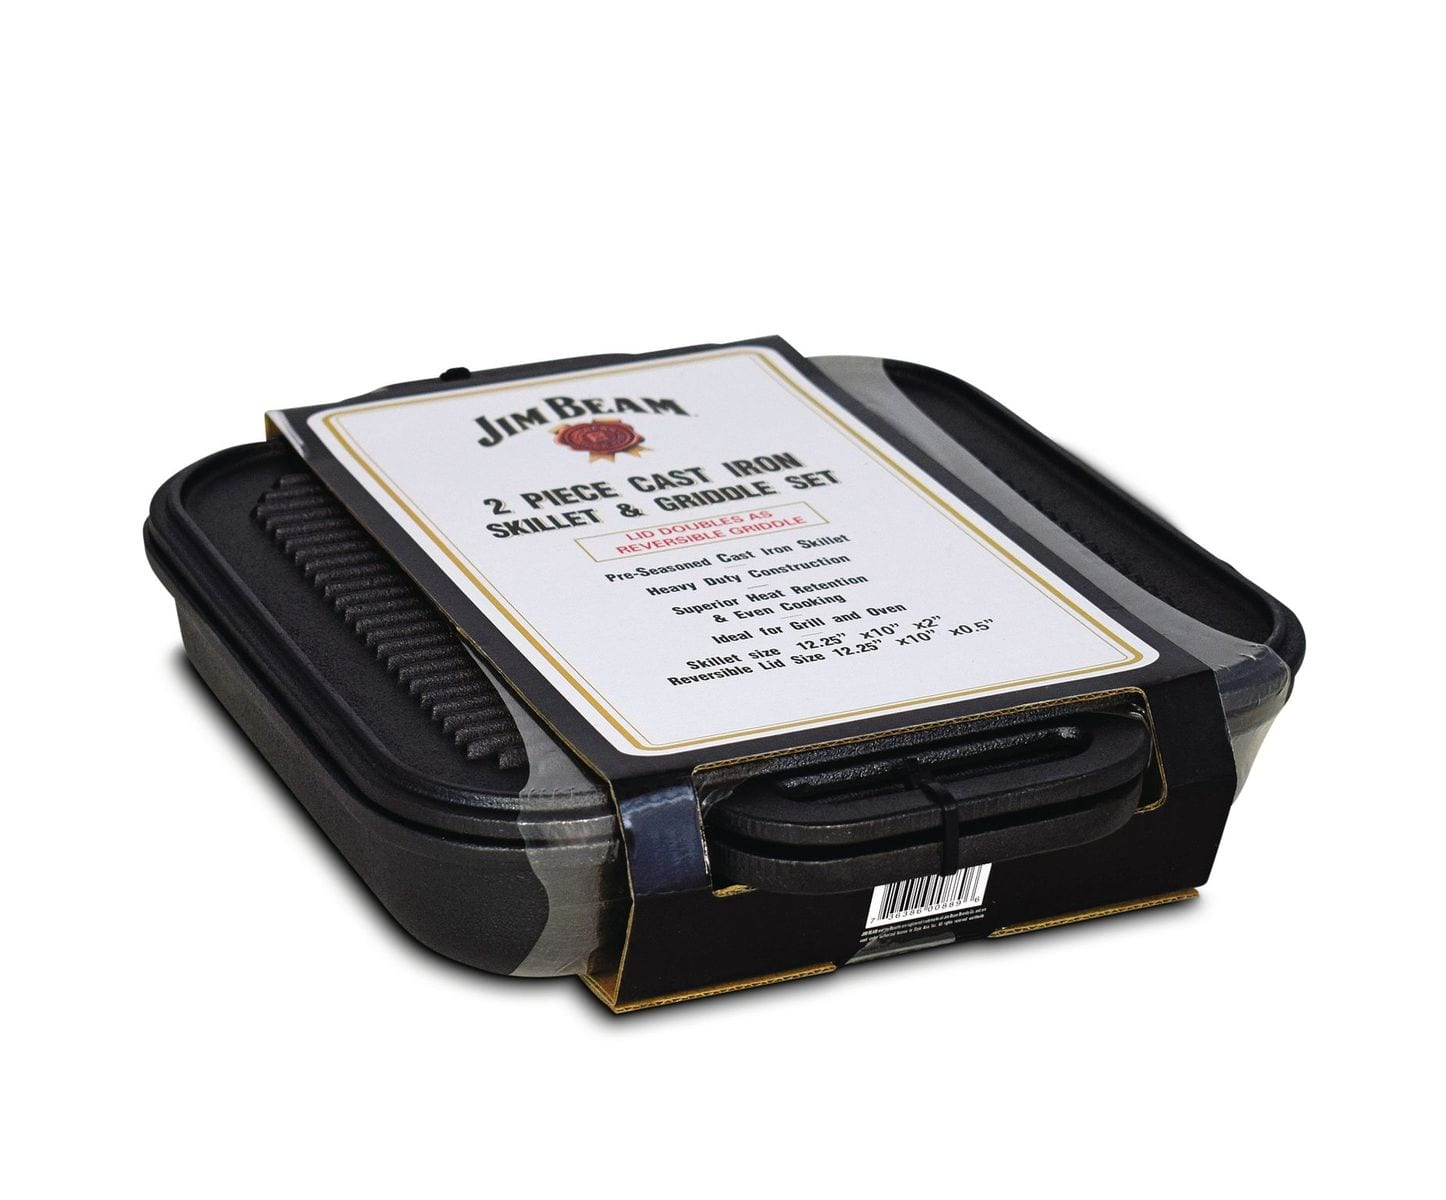 Jim Beam Cst Iron 3 in 1 Skillet with Reversible Griddle